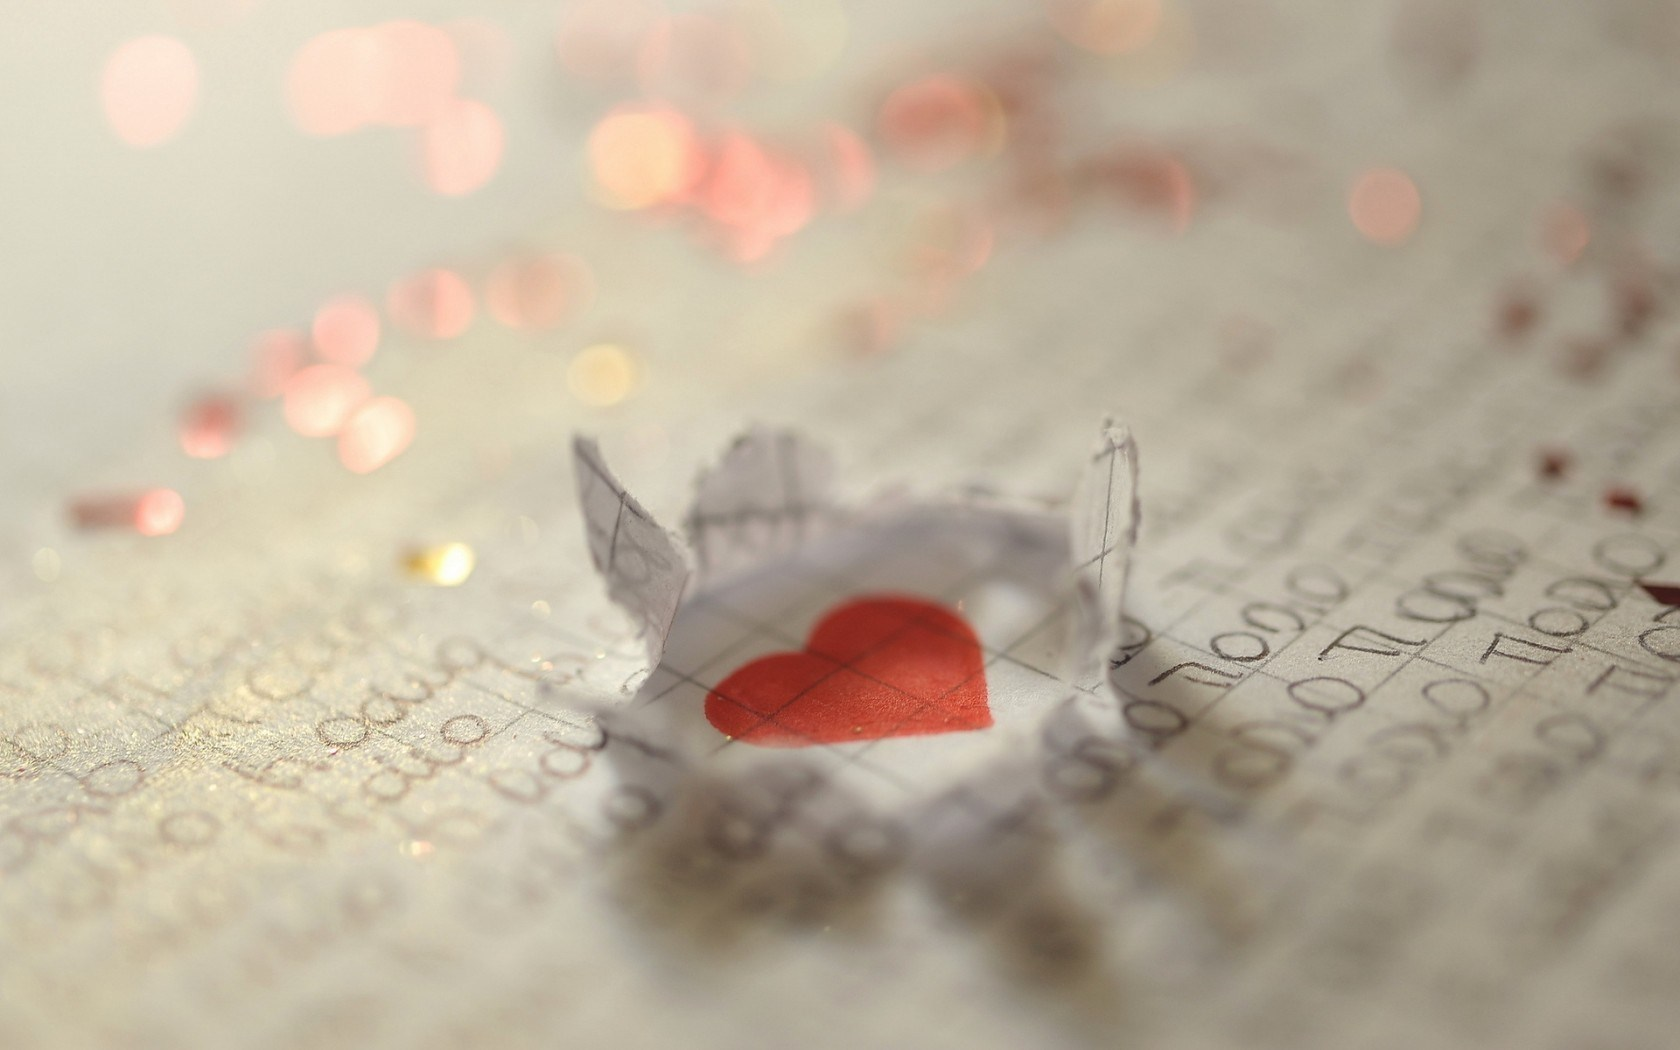 Awesome Love Wallpaper: Wonderful Heart Letter Mood Love Hd Wallpaper 1680x1050px